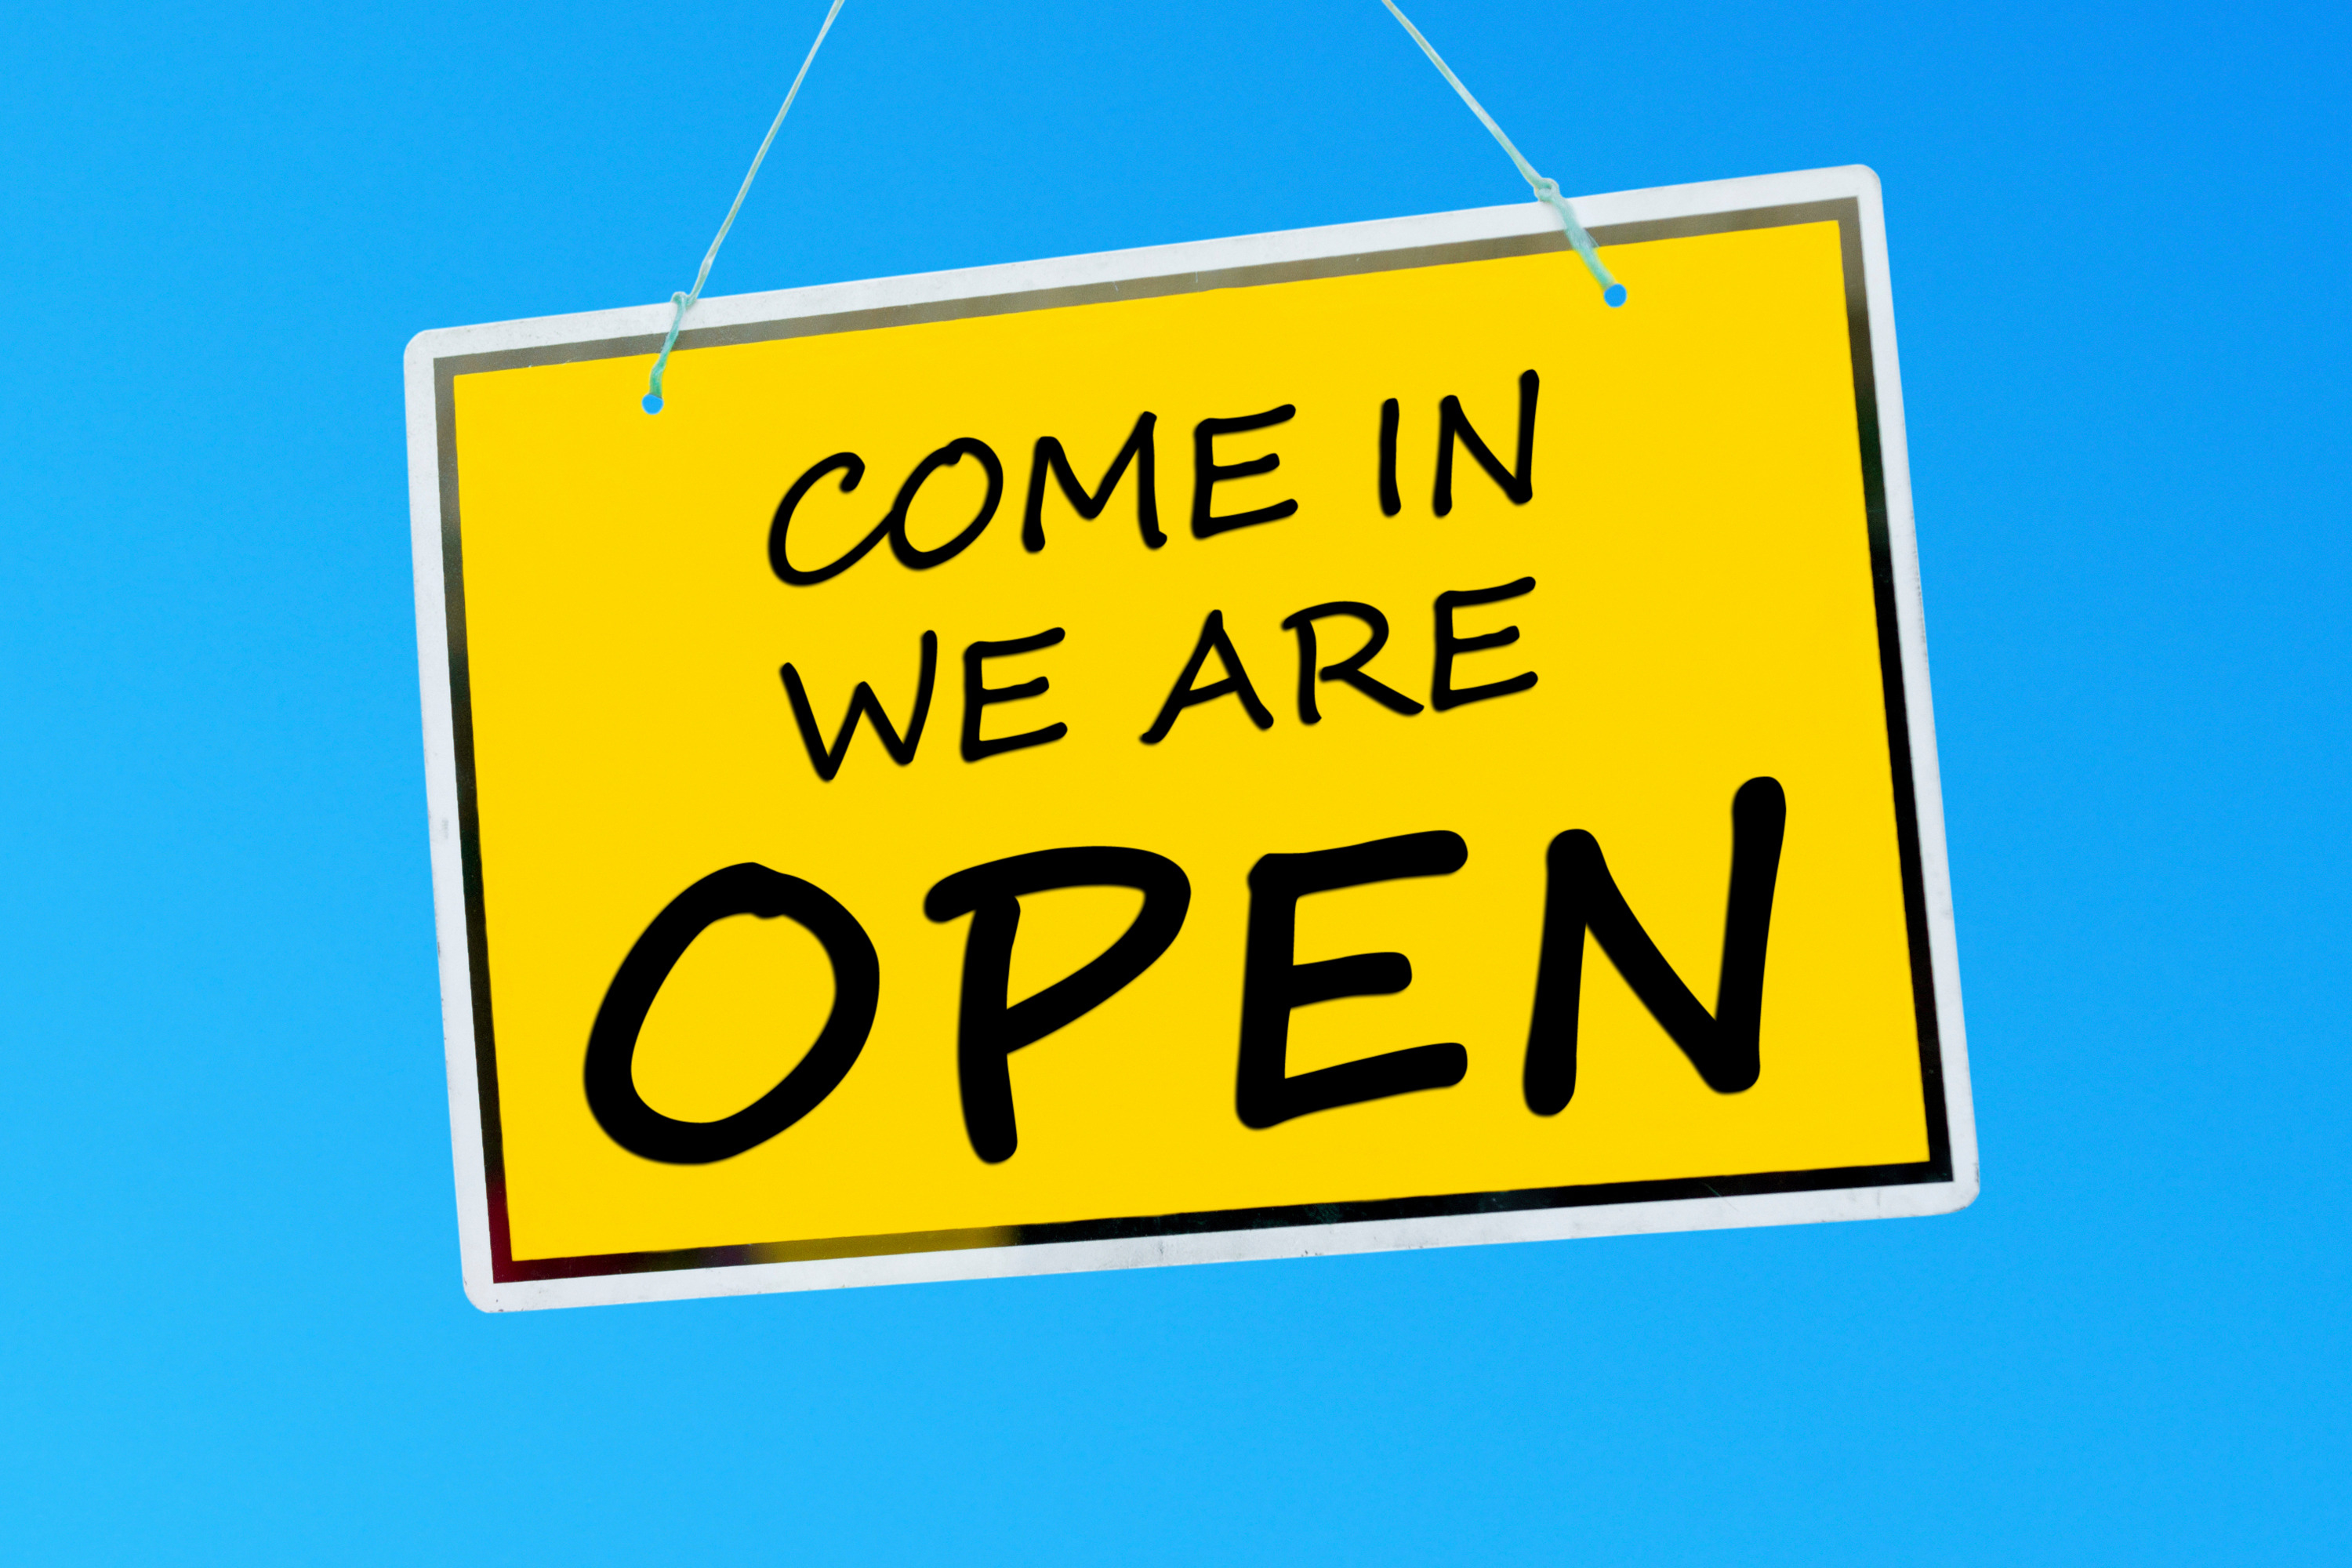 Sign depicting come in, we are open for business 24 hours per day, 7 days per week, 365 days per year